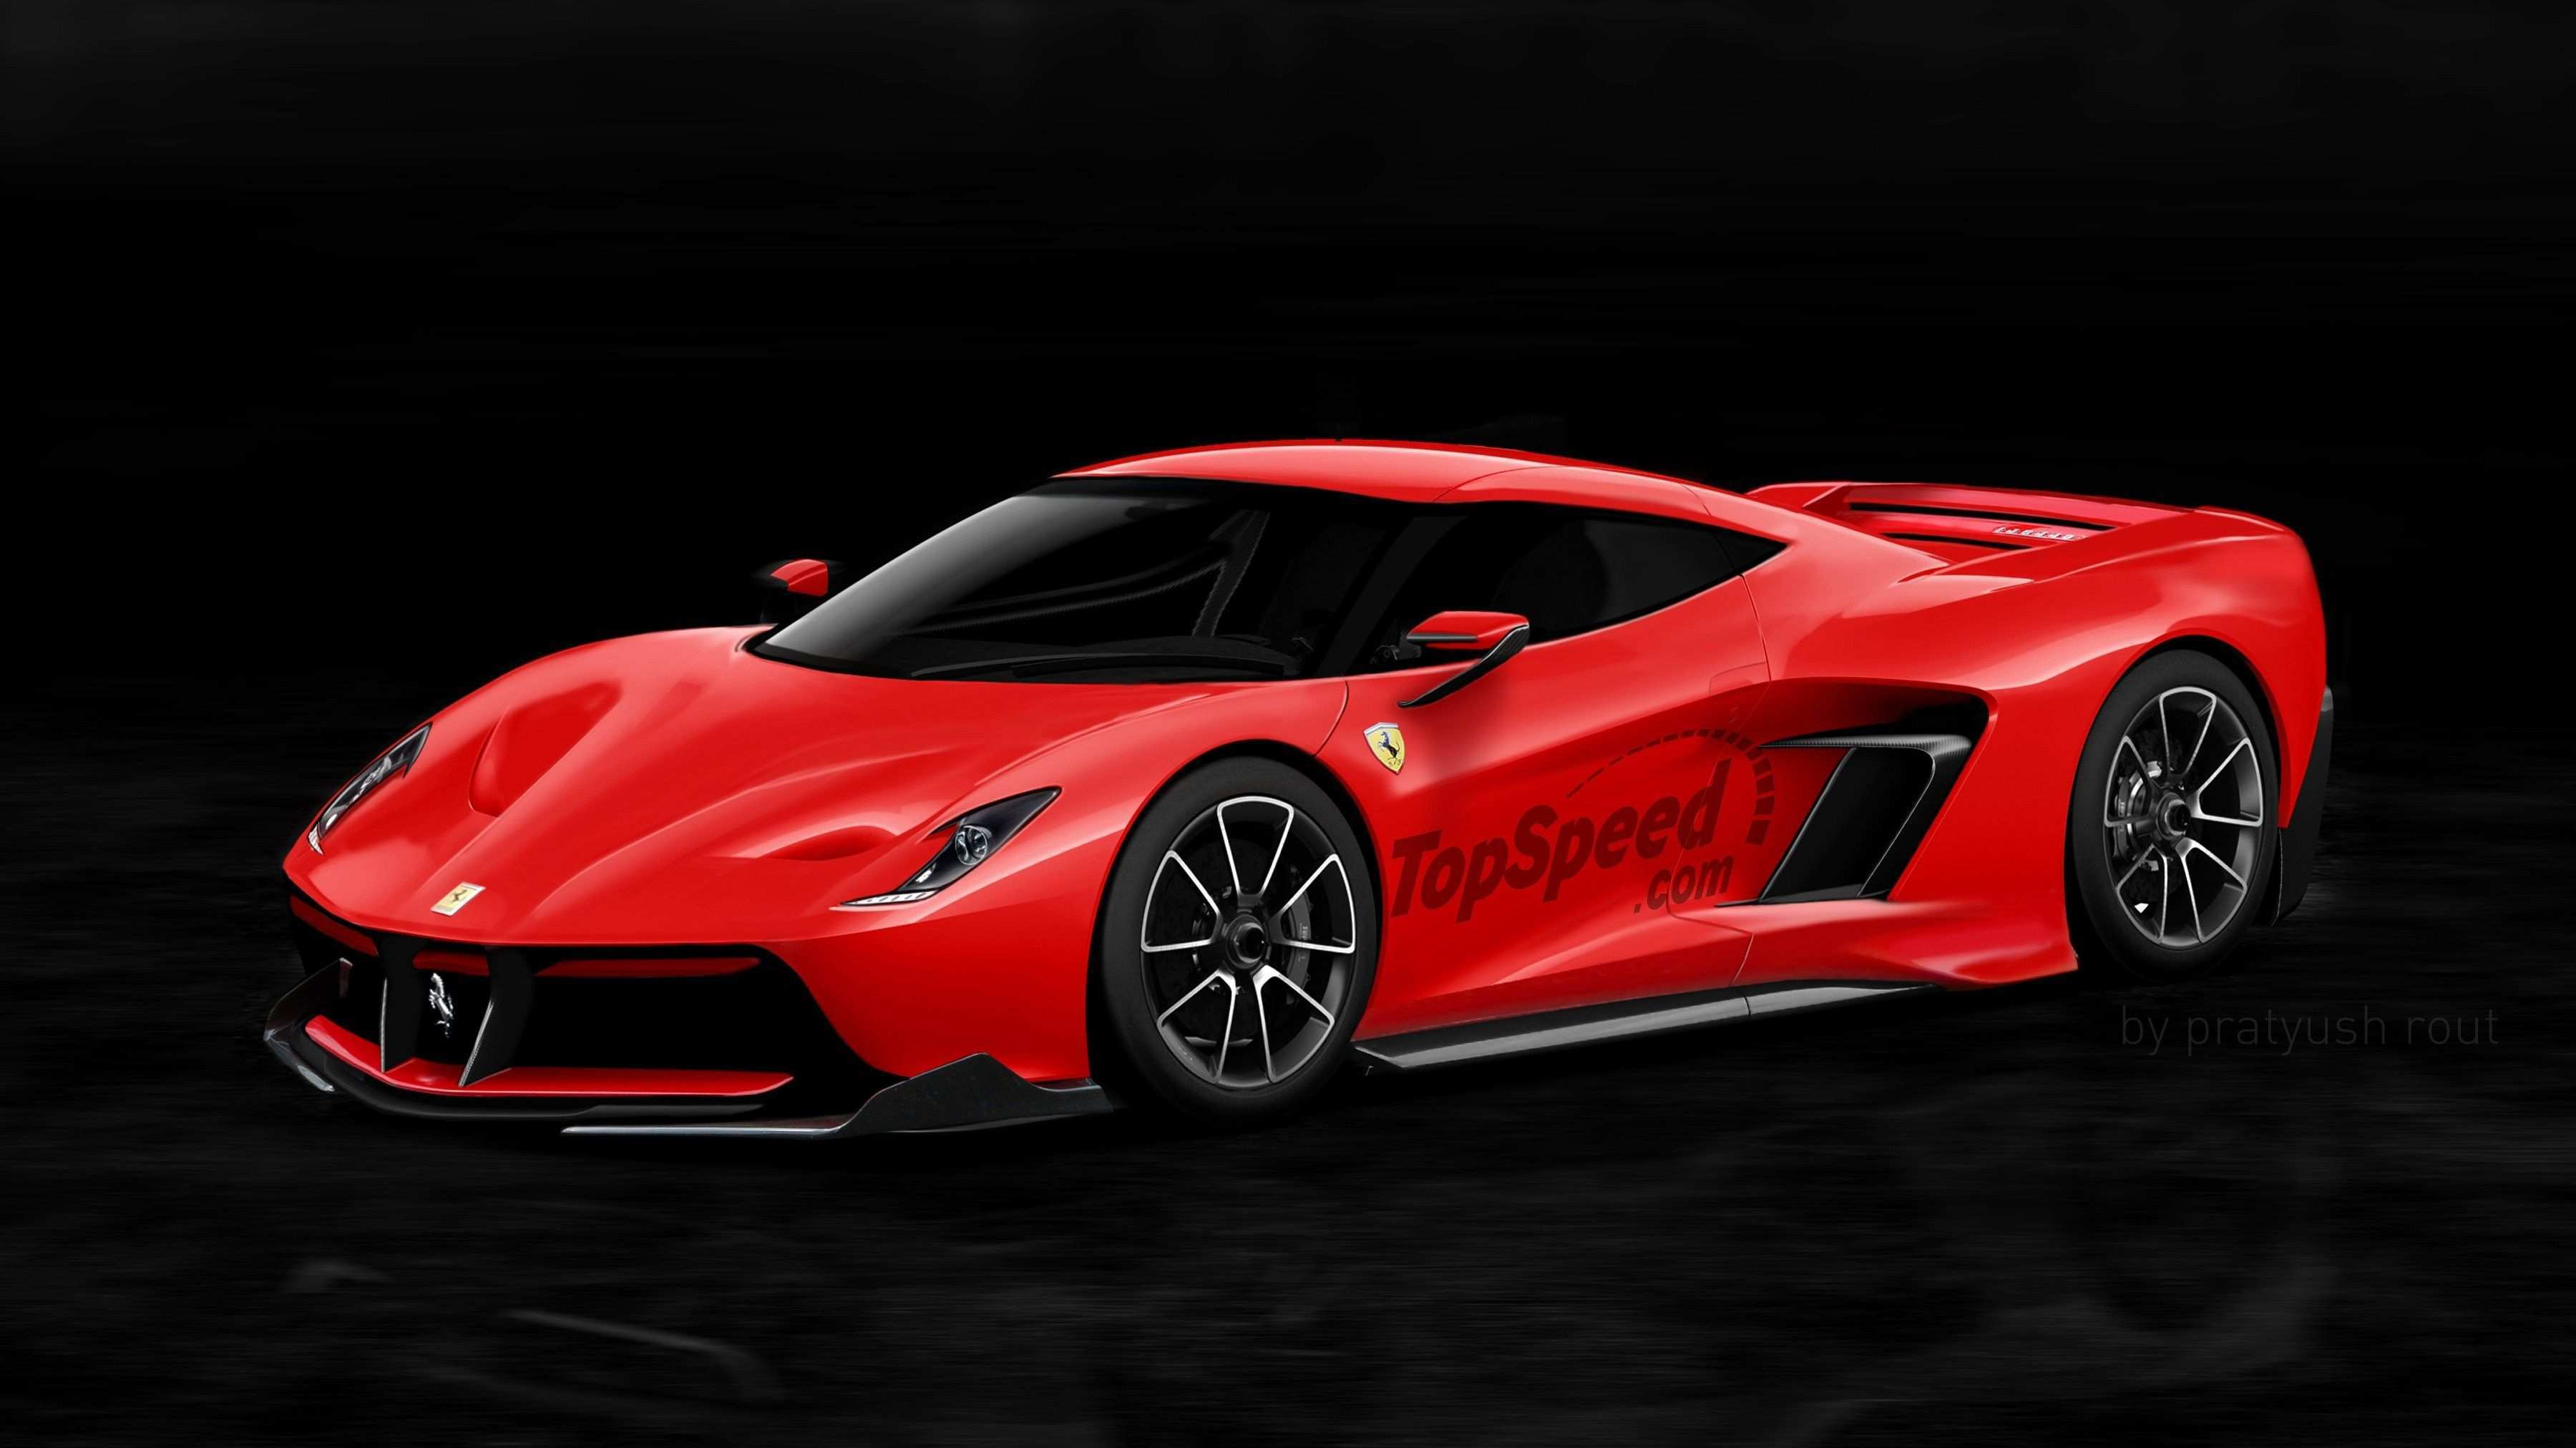 12 All New 2019 Ferrari Laferrari Images with 2019 Ferrari Laferrari